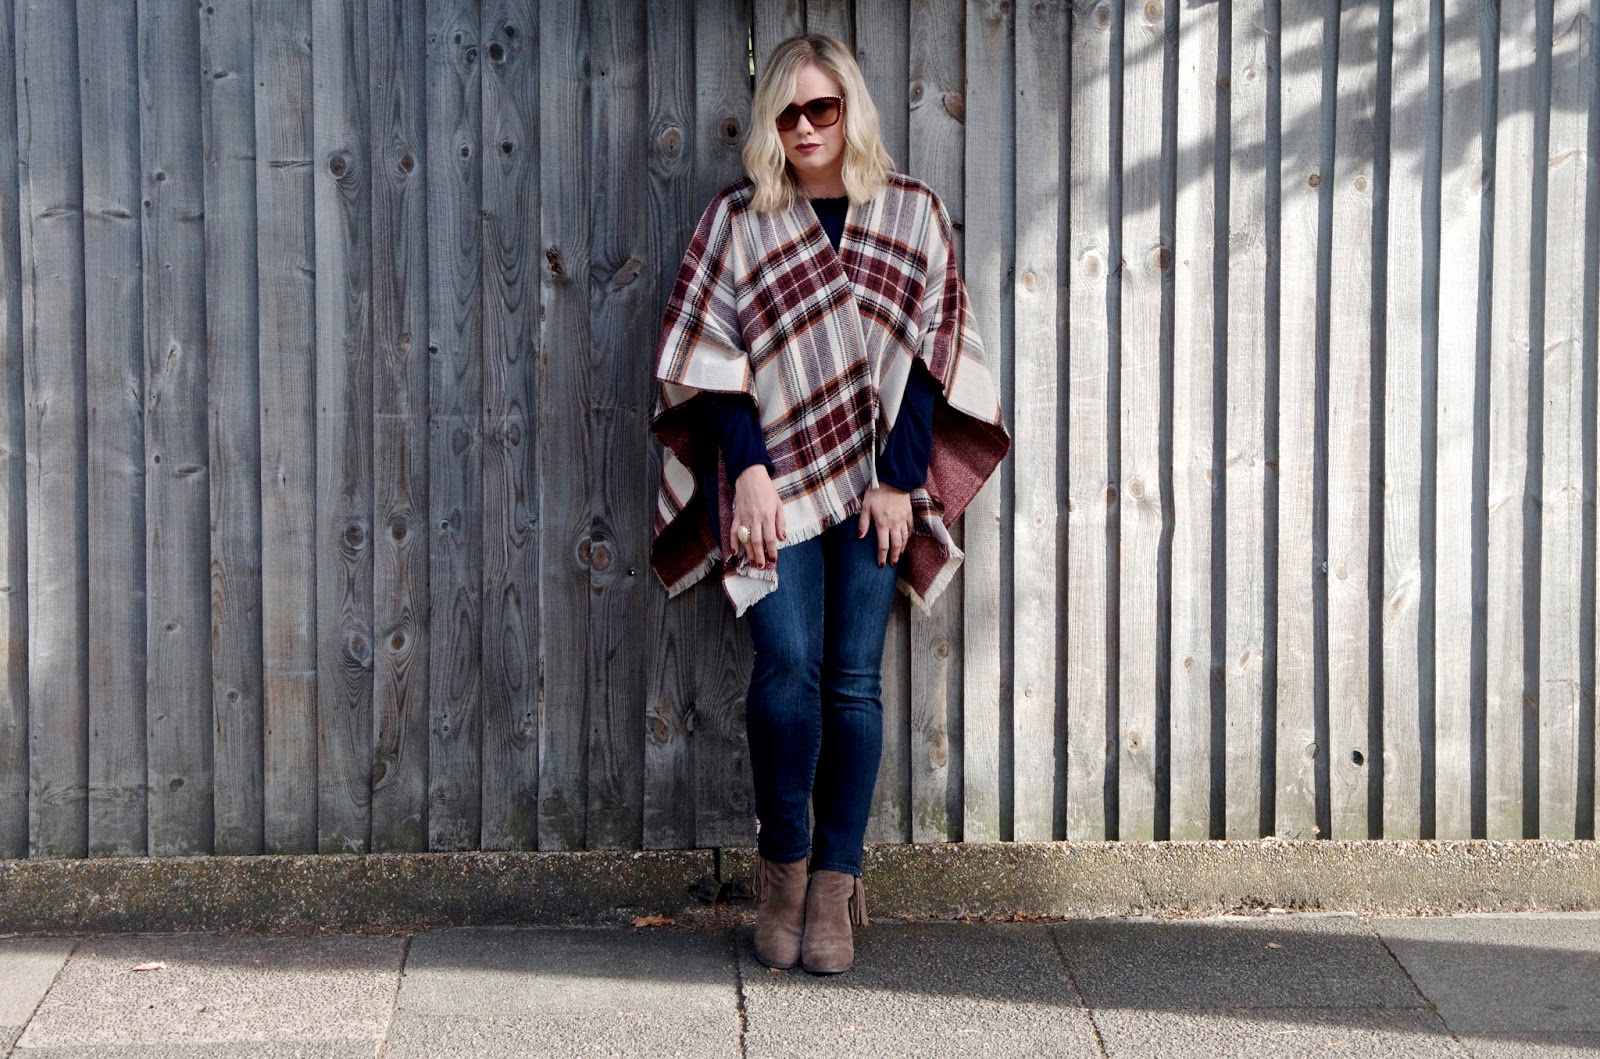 Wool tartan poncho with skinny jeans and fringe booties